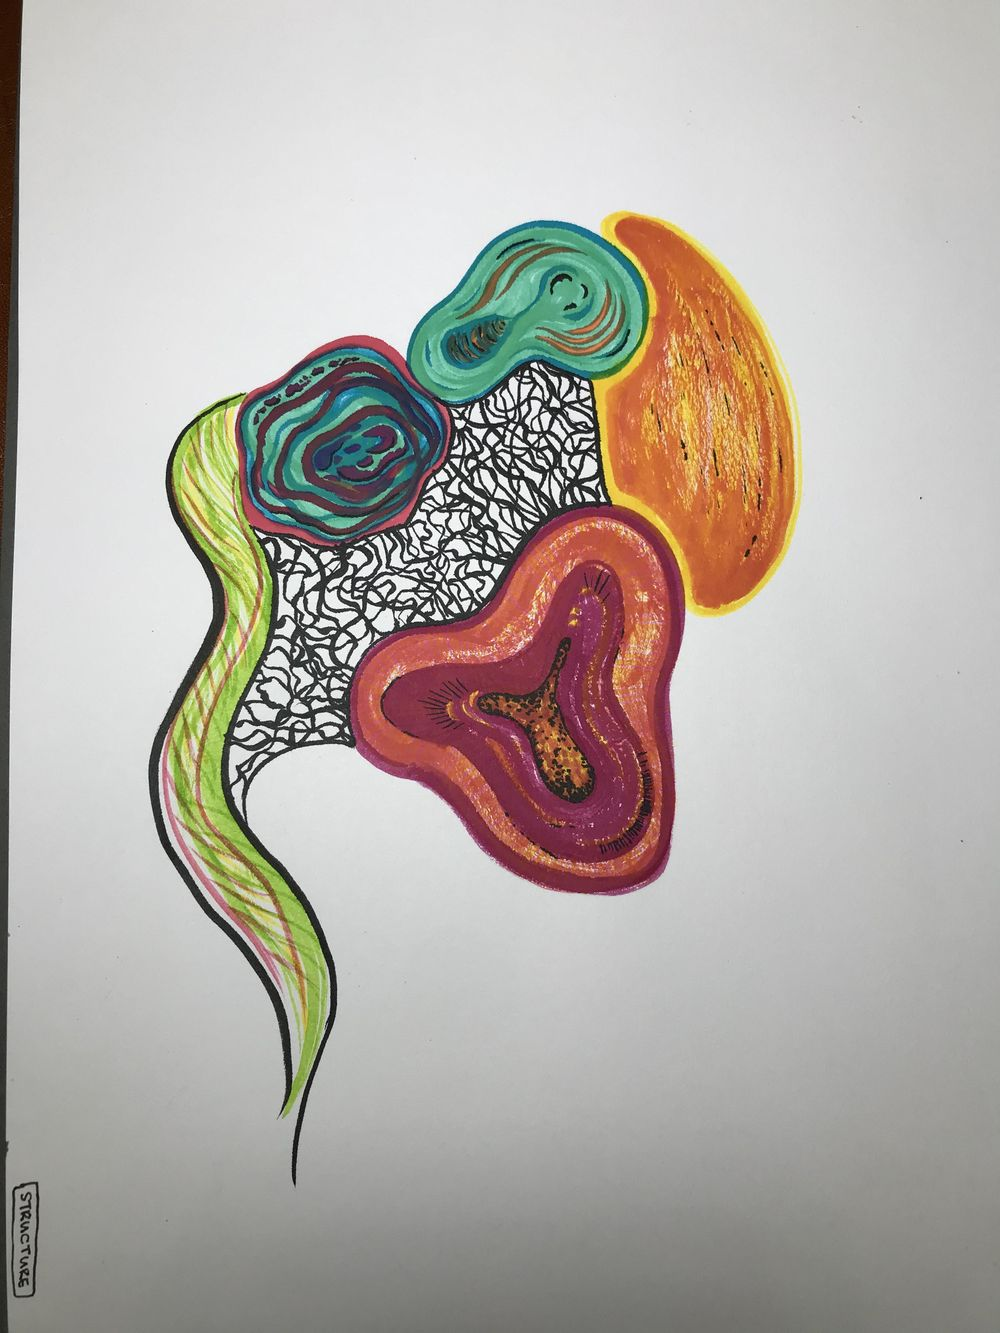 14 drawings challenge - image 11 - student project